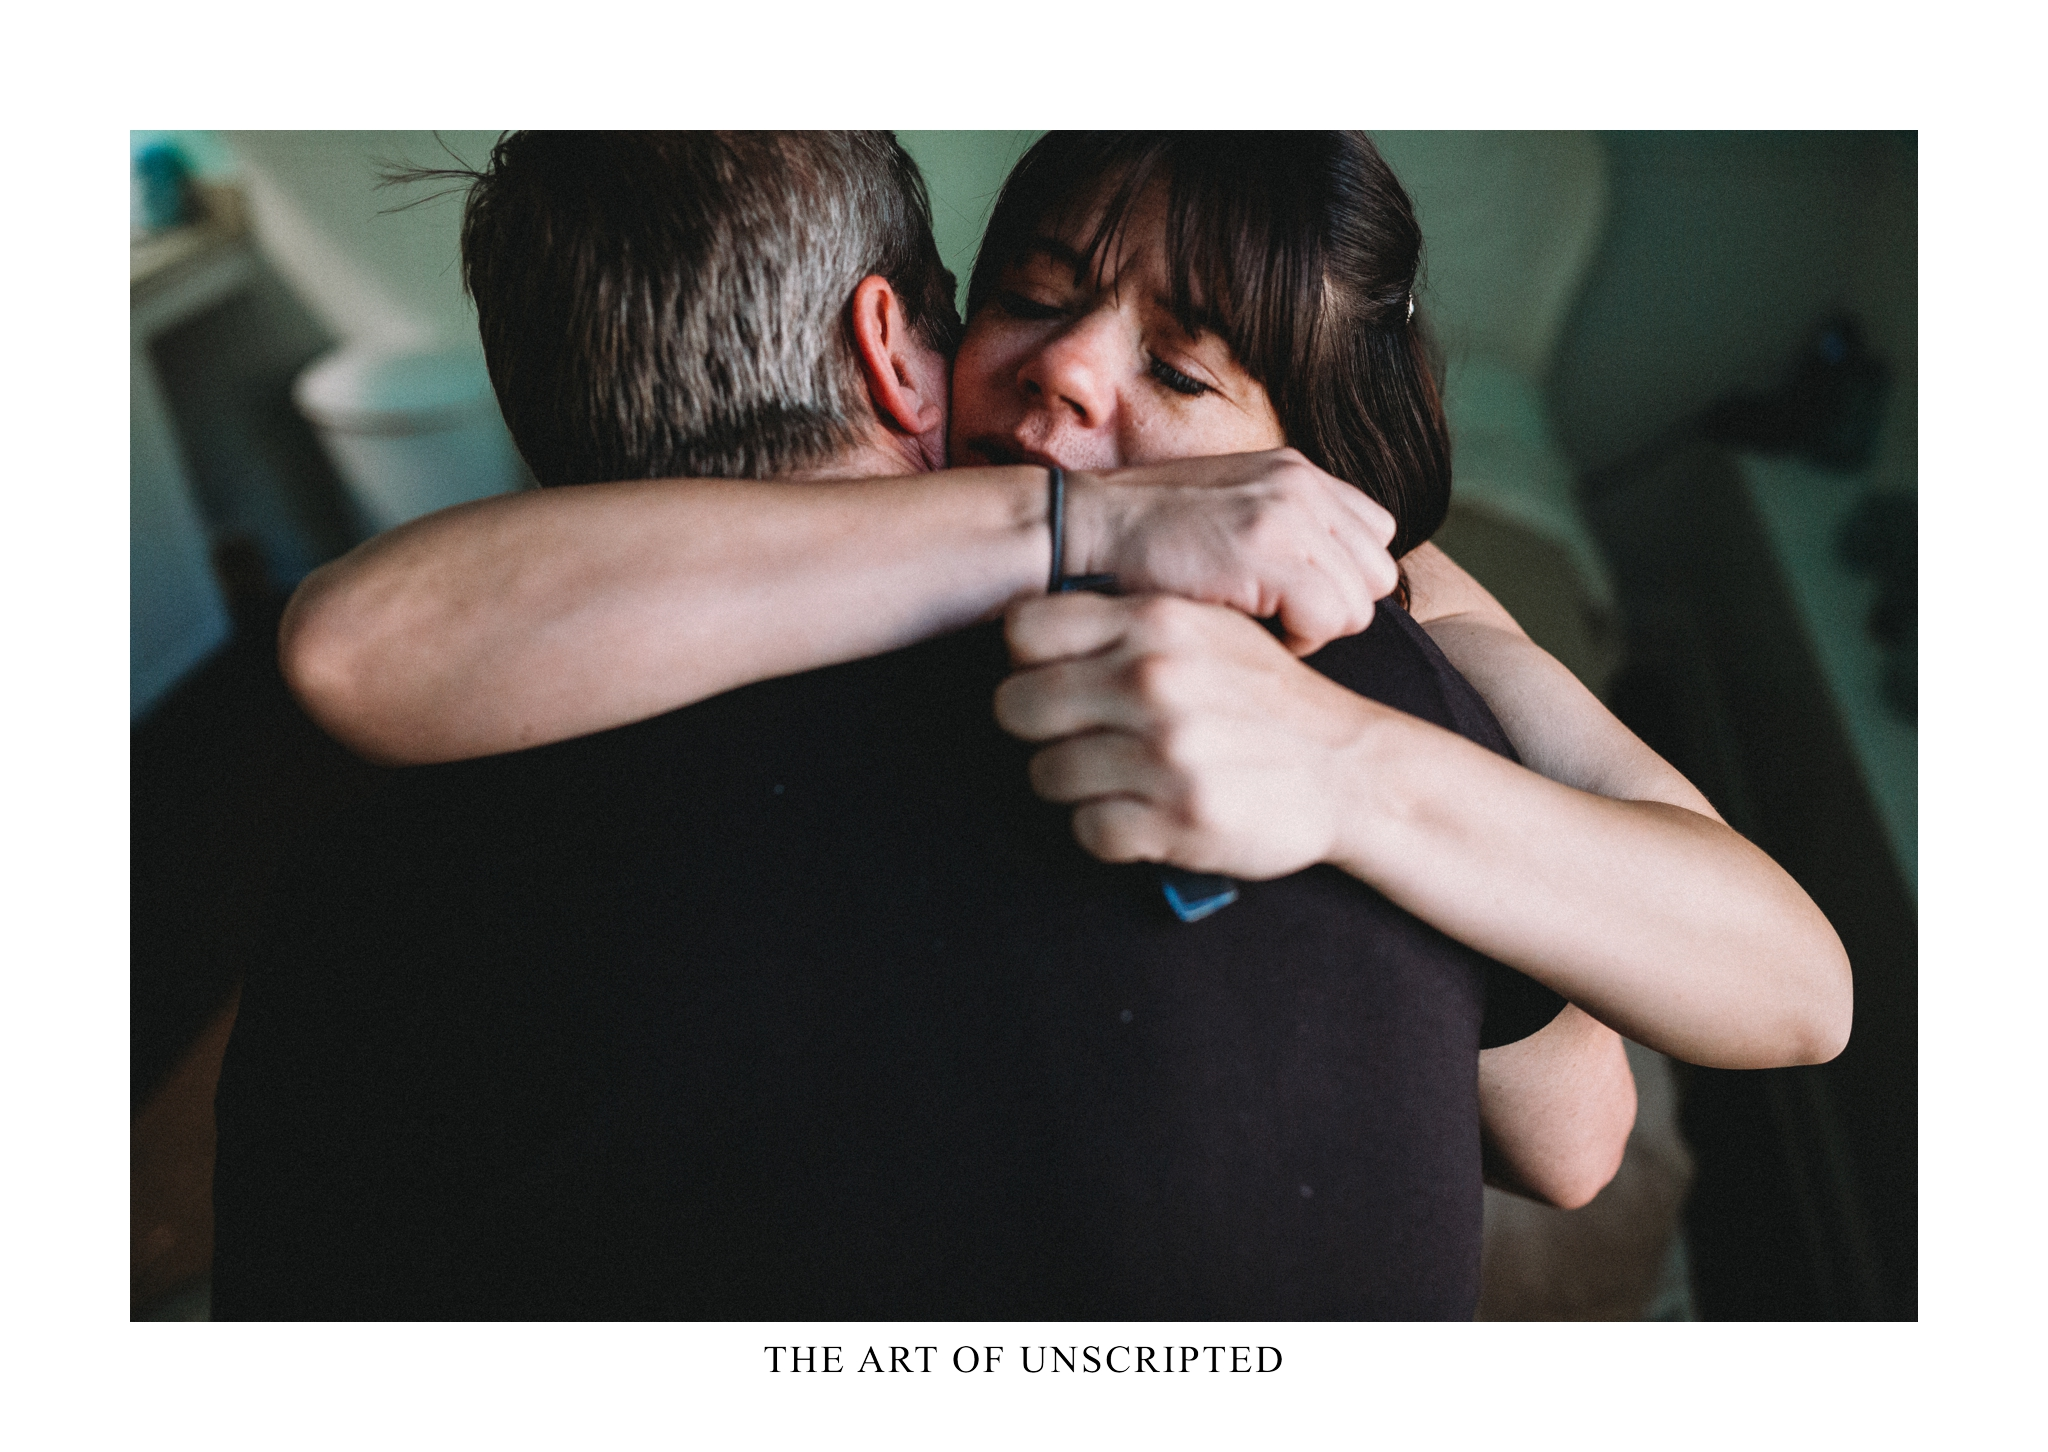 2017-06-10_074026__THE ART OF UNSCRIPTED_SPRINGFIELD MO_BIRTH PHOTOGRAPHER_ DOCUMENTARY_STORYTELLING_417_PHOTOGRAPHER